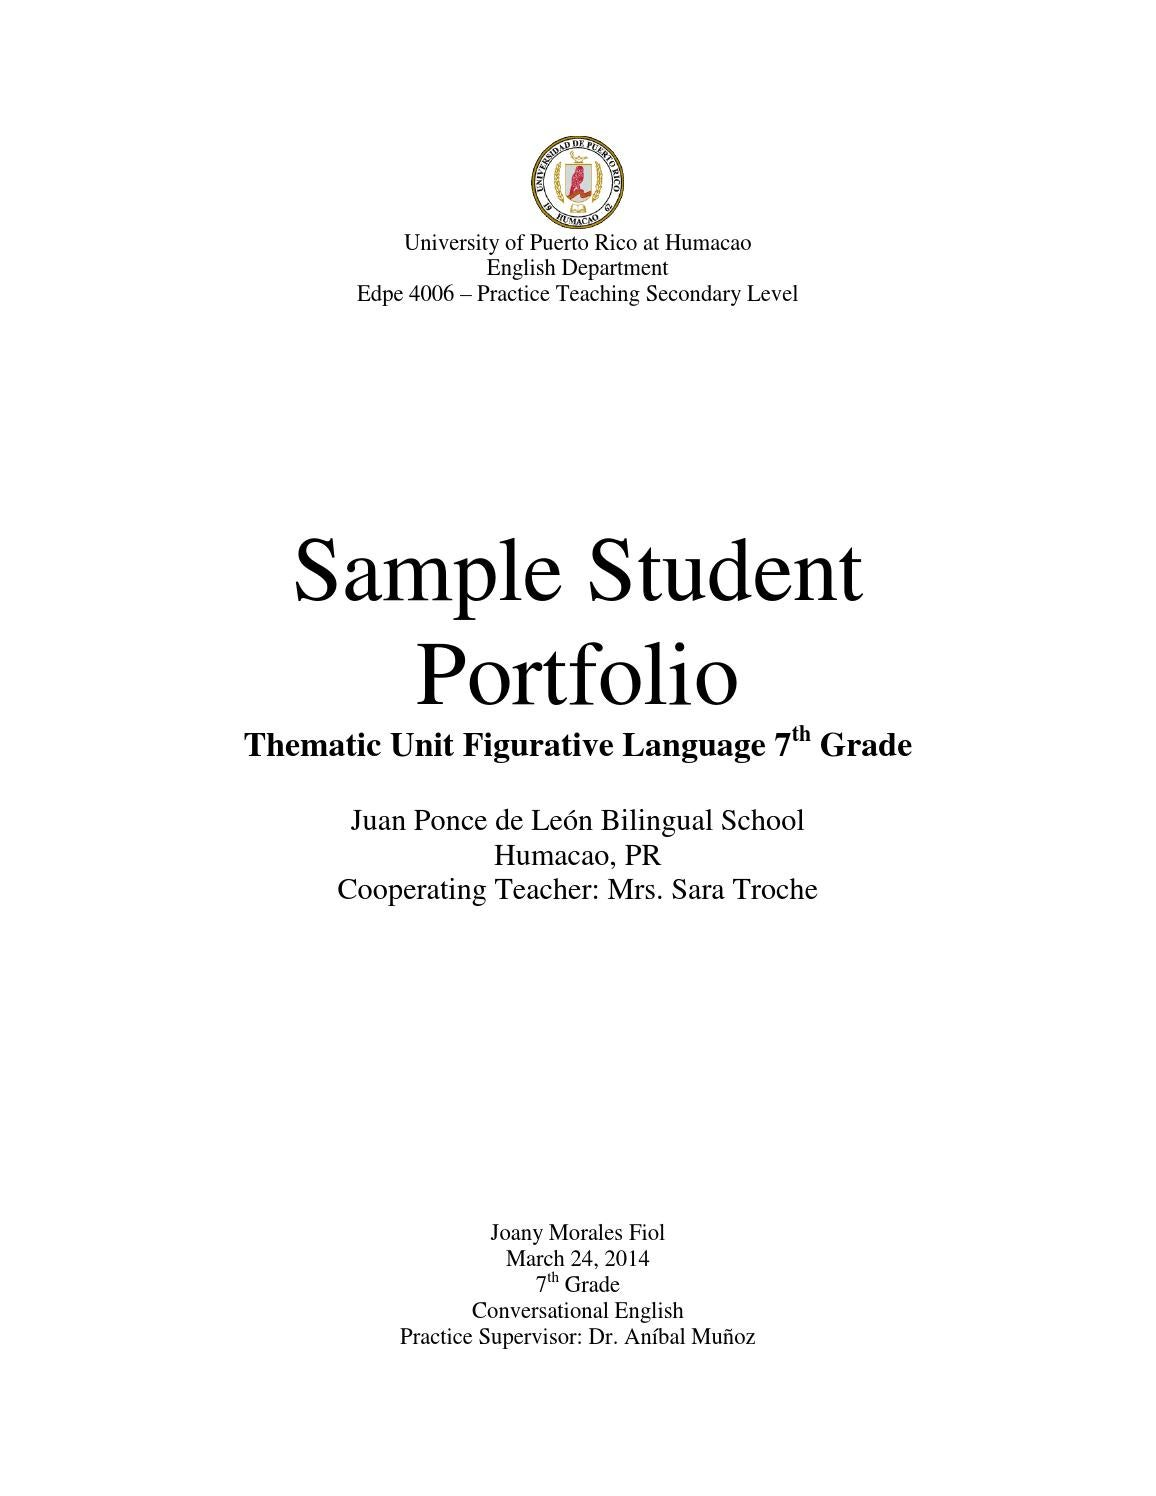 Sample student portfolio by Joany Morales - issuu